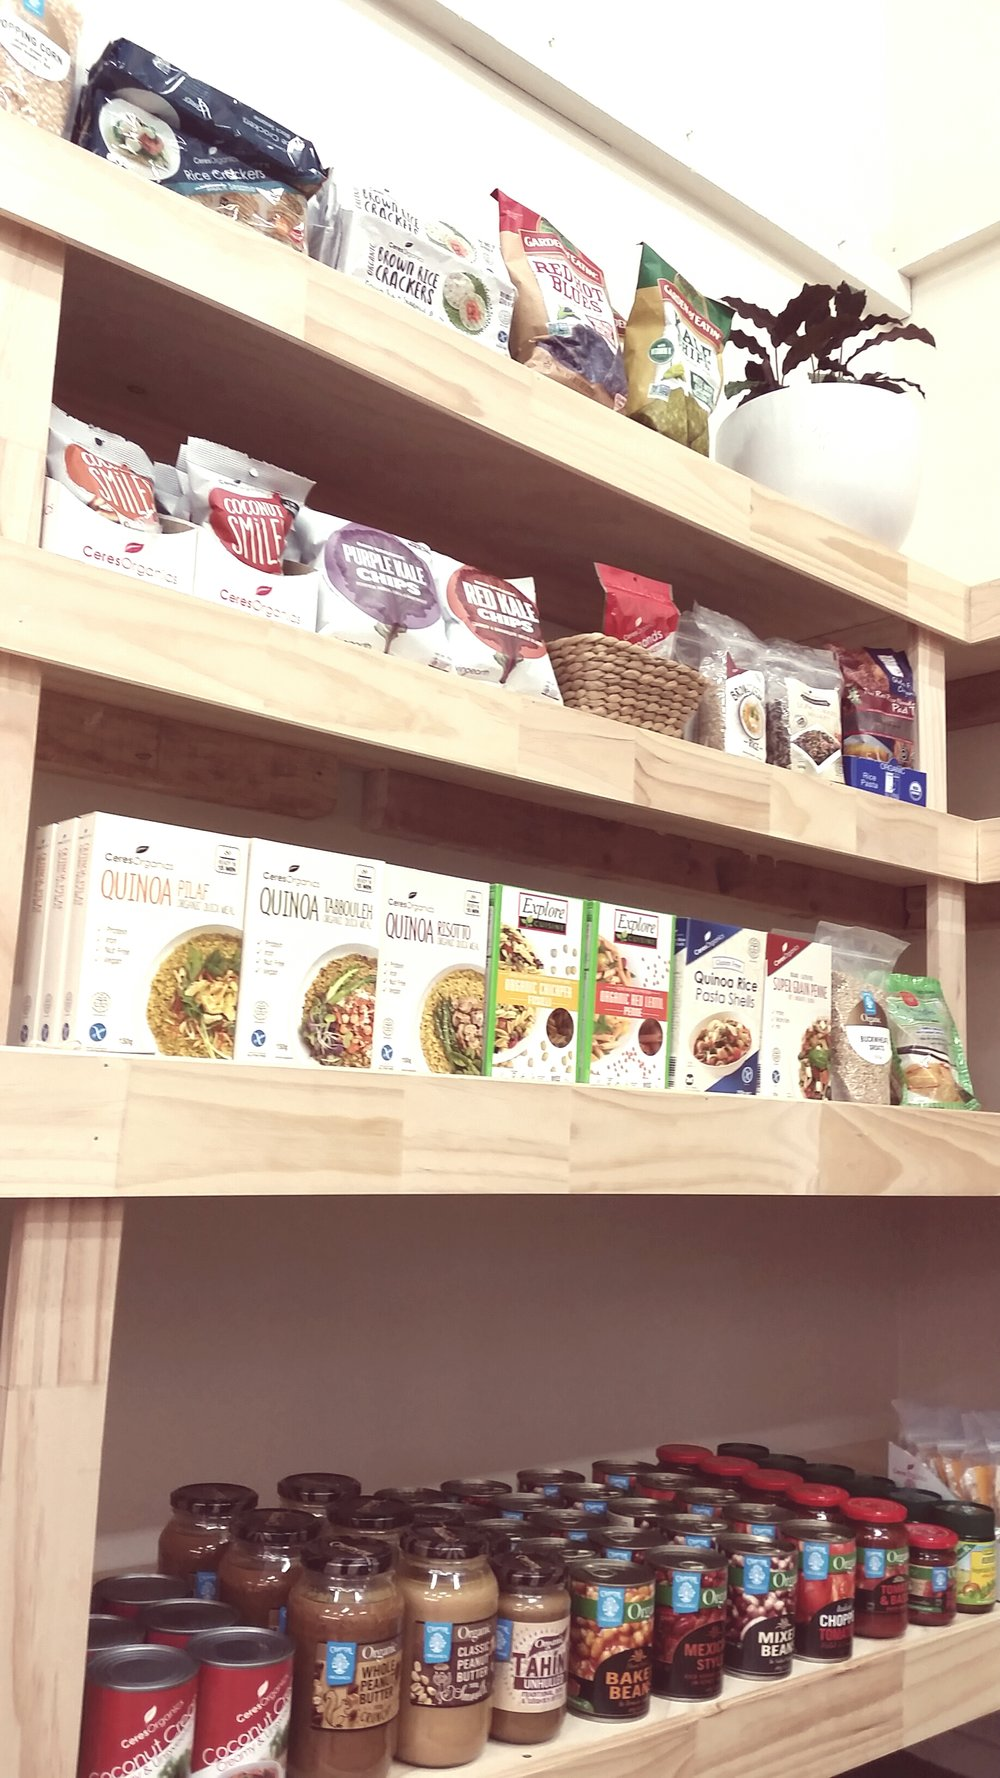 We stock the most nutritious and inspiring products for you and your family.